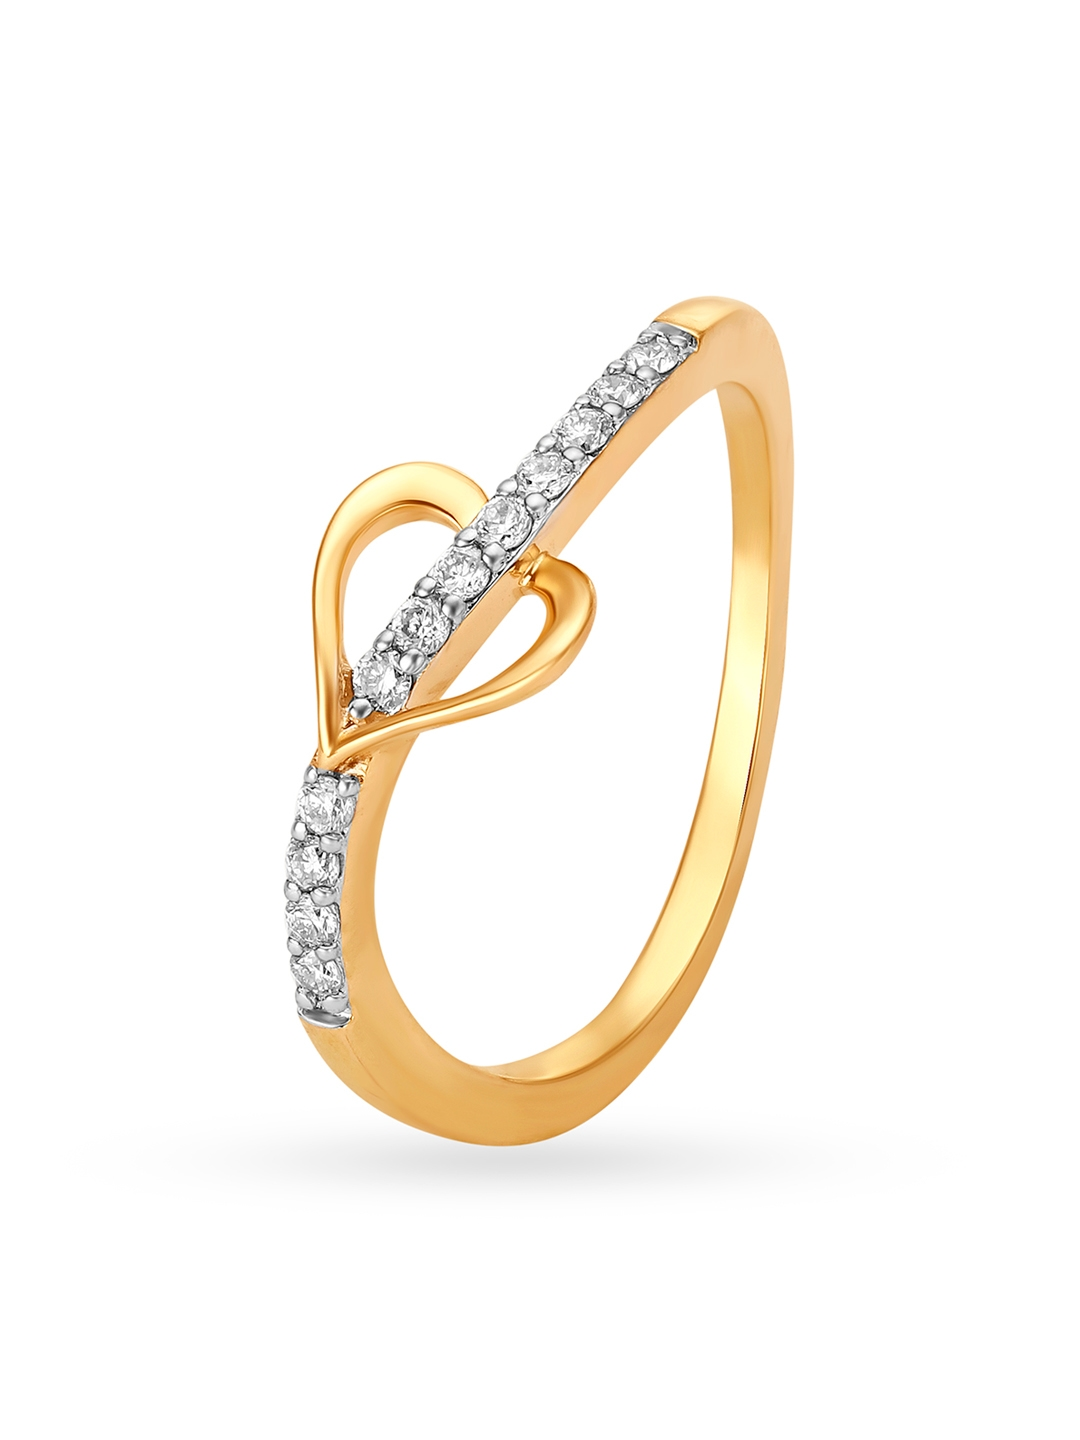 Mia by Tanishq 14KT Yellow Gold Diamond Finger Ring